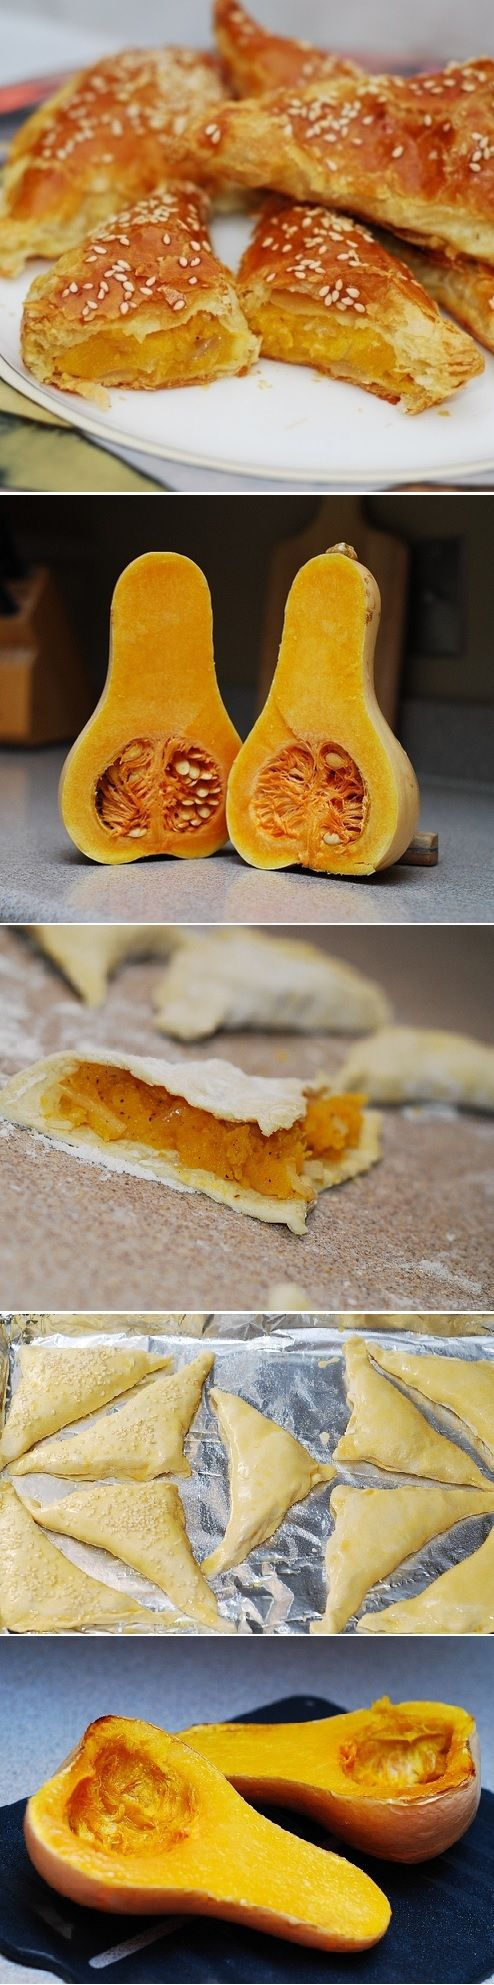 United States) Butternut squash (or pumpkin) turnovers, using puff ...